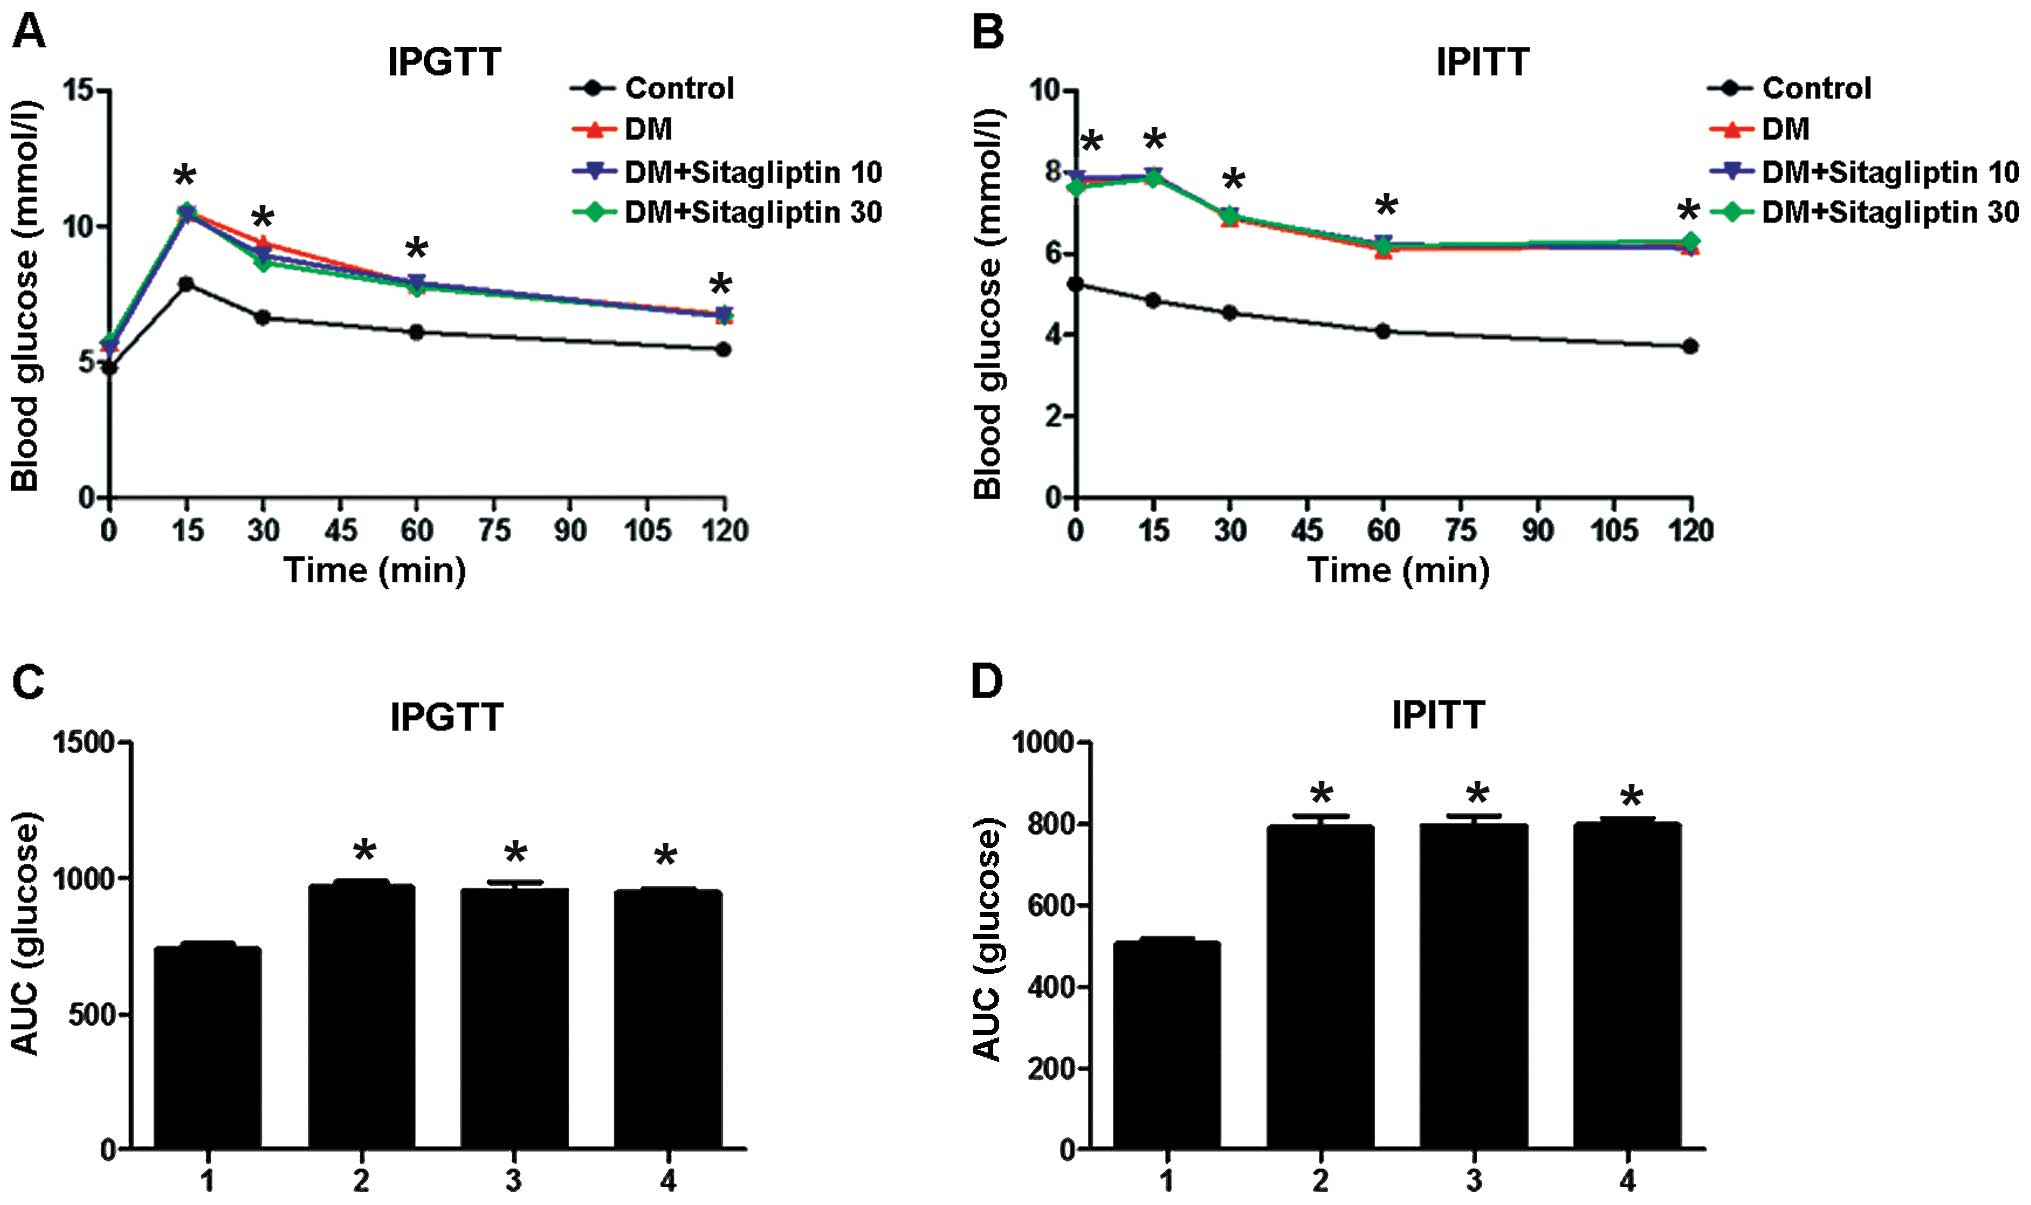 Sitagliptin inhibits endothelin-1 expression in the aortic